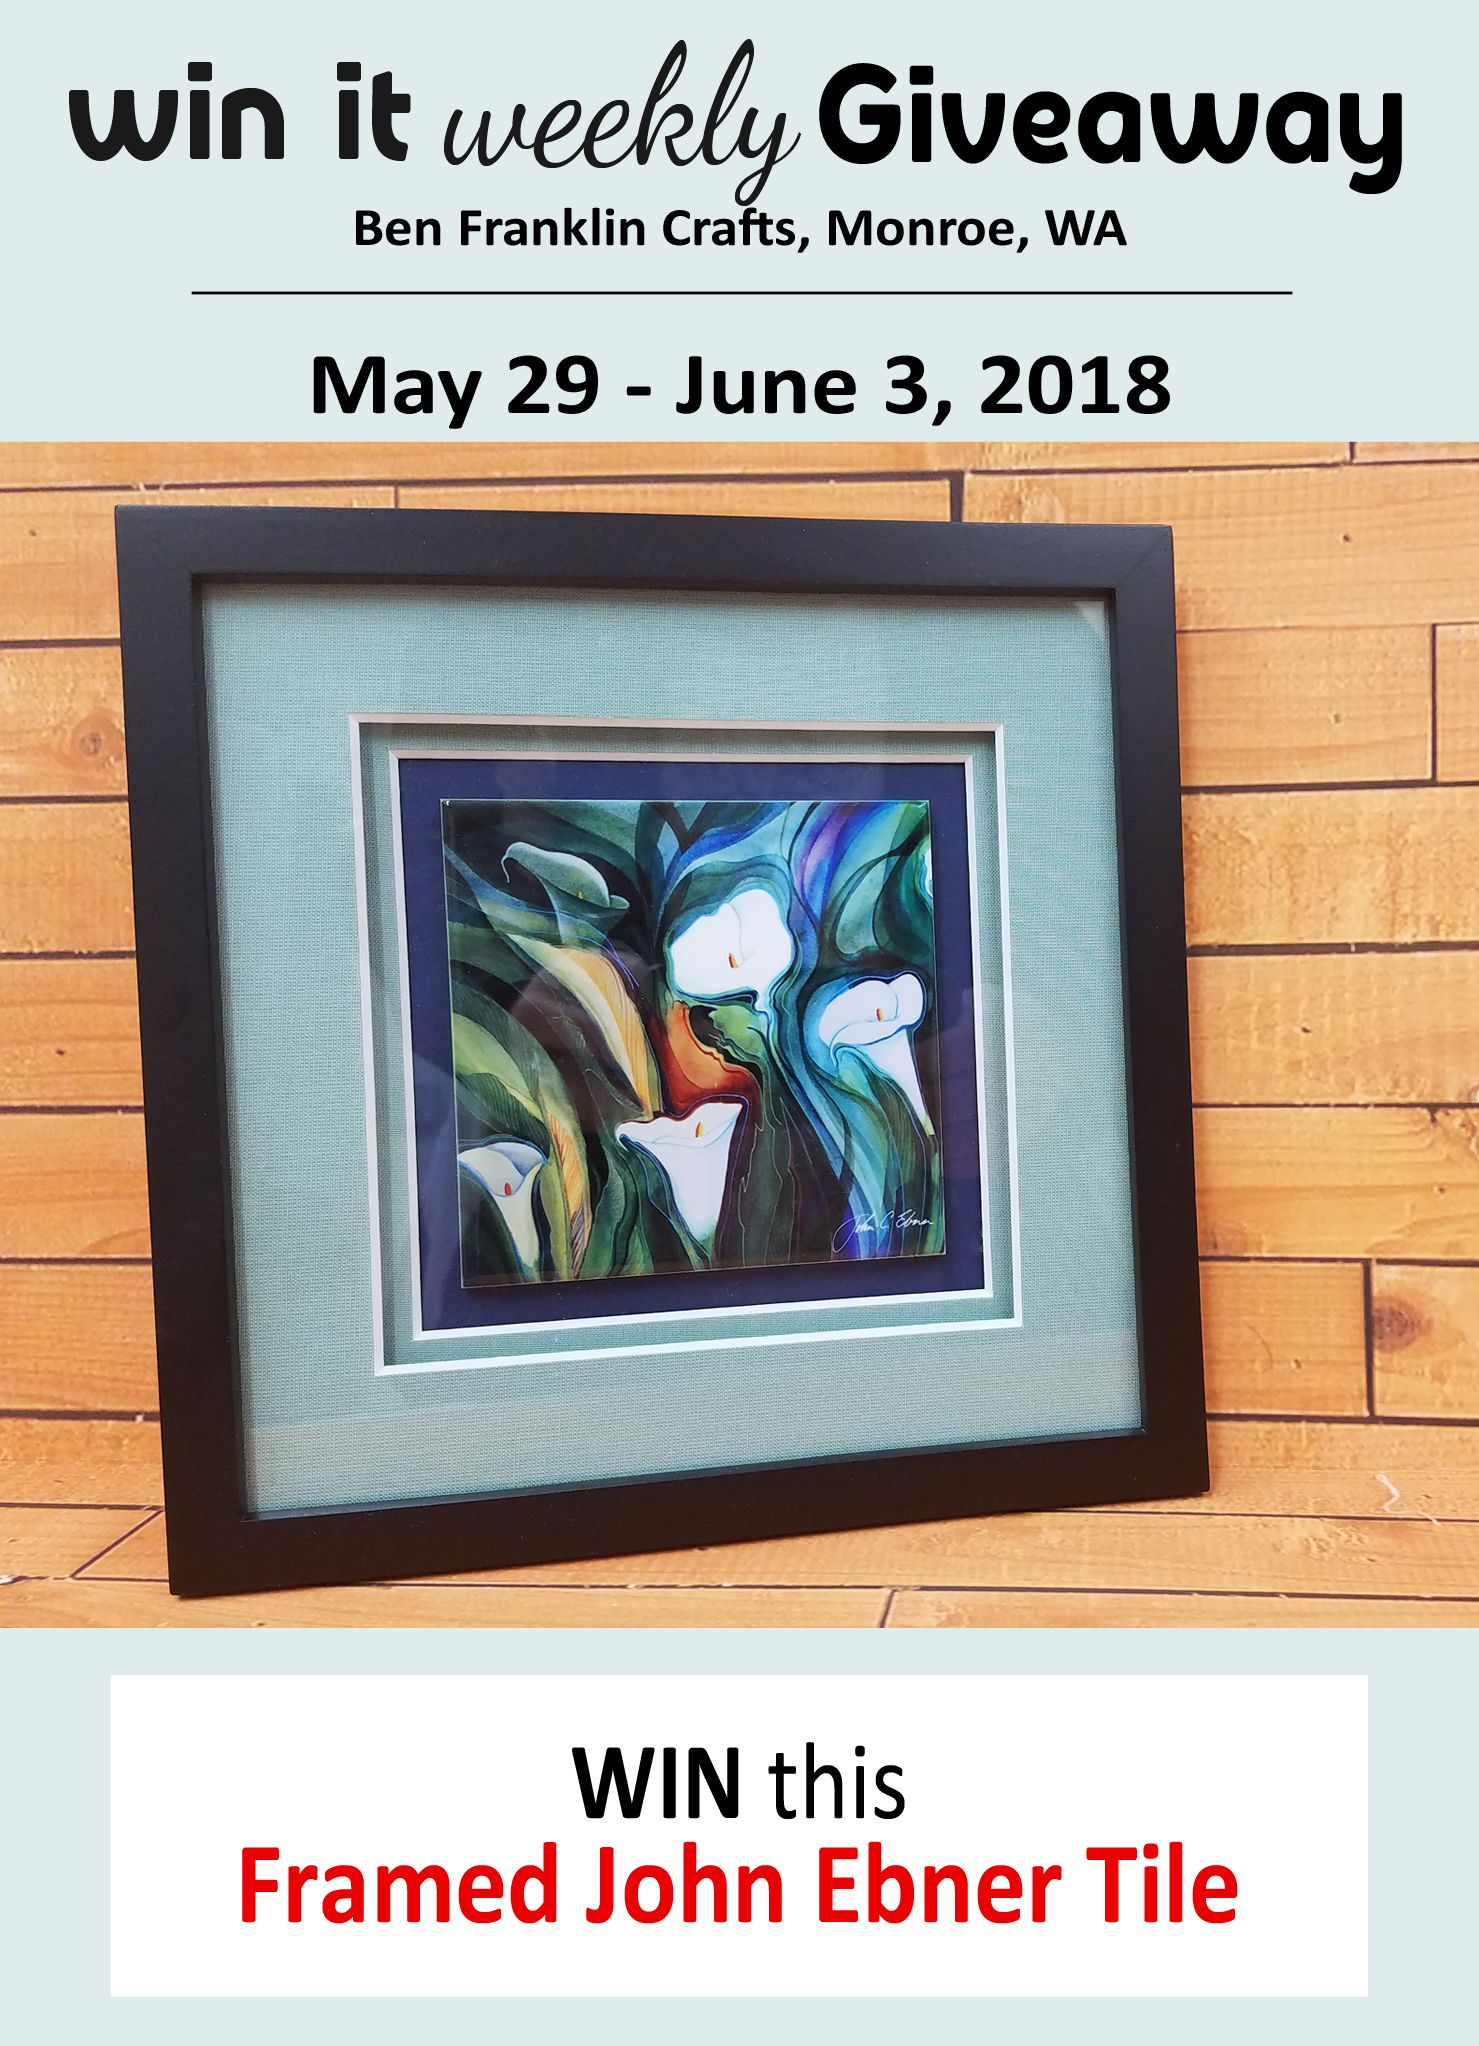 Win It Weekly Giveaway (May 29 - June 3, 2018) | Giveaway, Frame ...